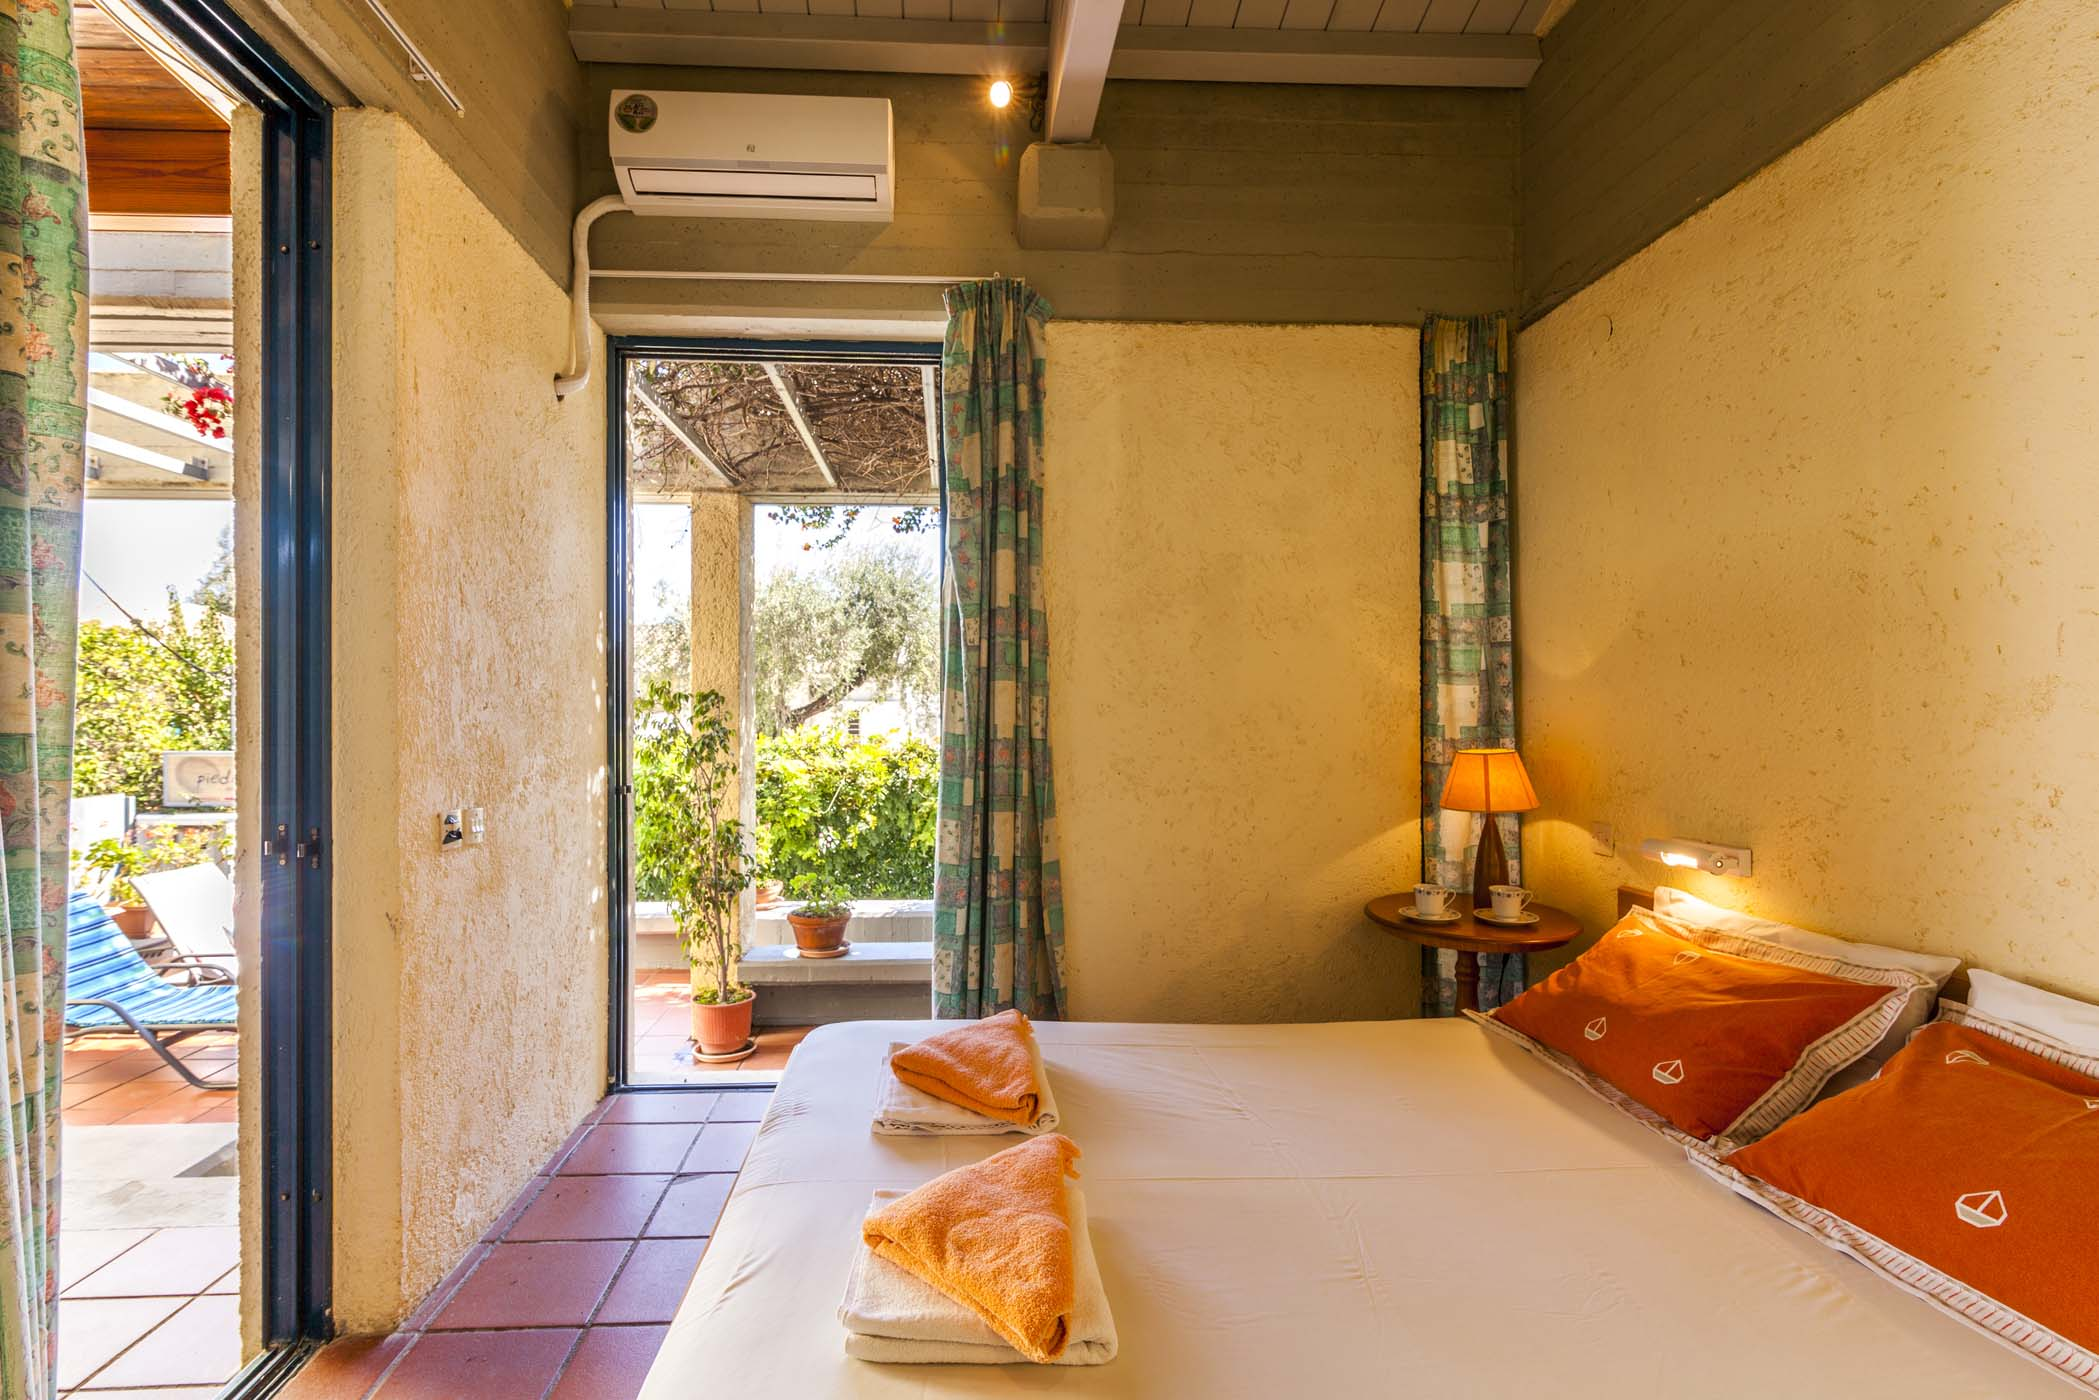 corfu barbati accommodation - corfu barbati apartments - ionian summer